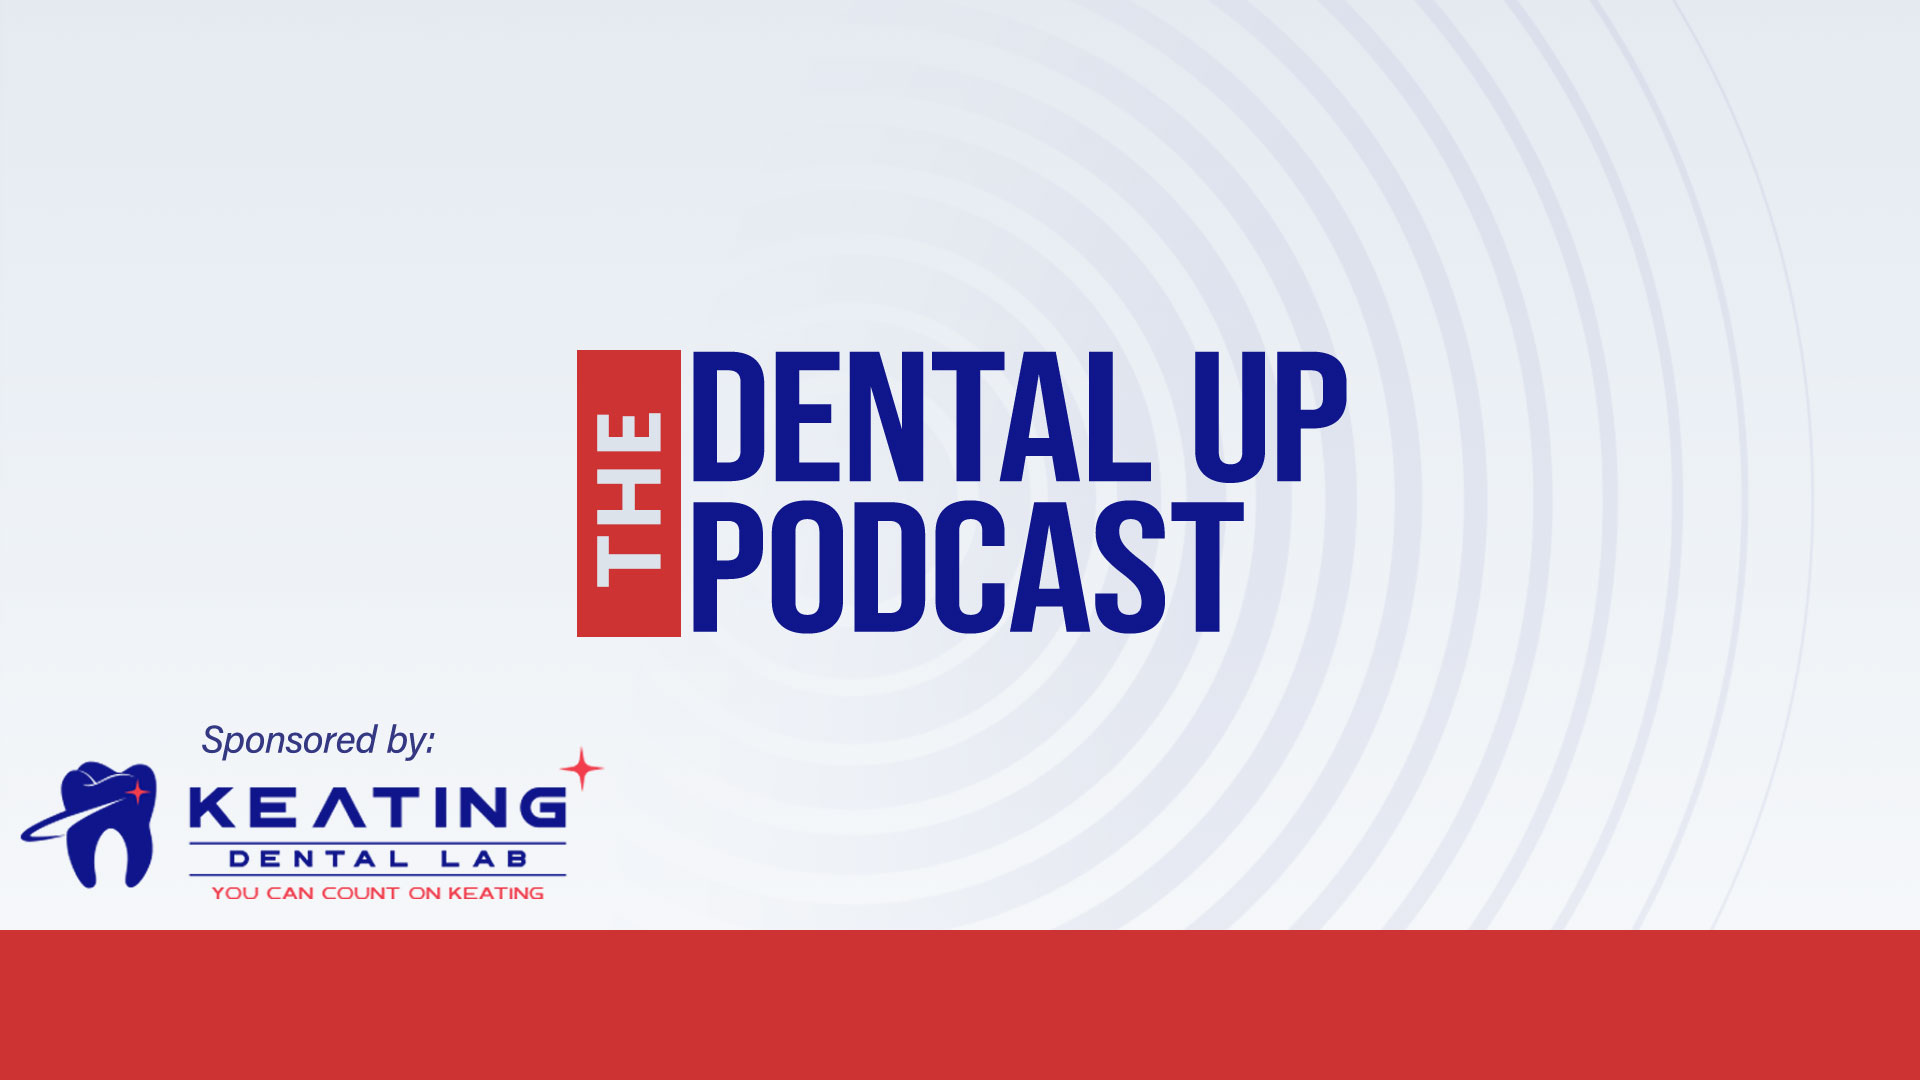 The Dental Up Podcast show art